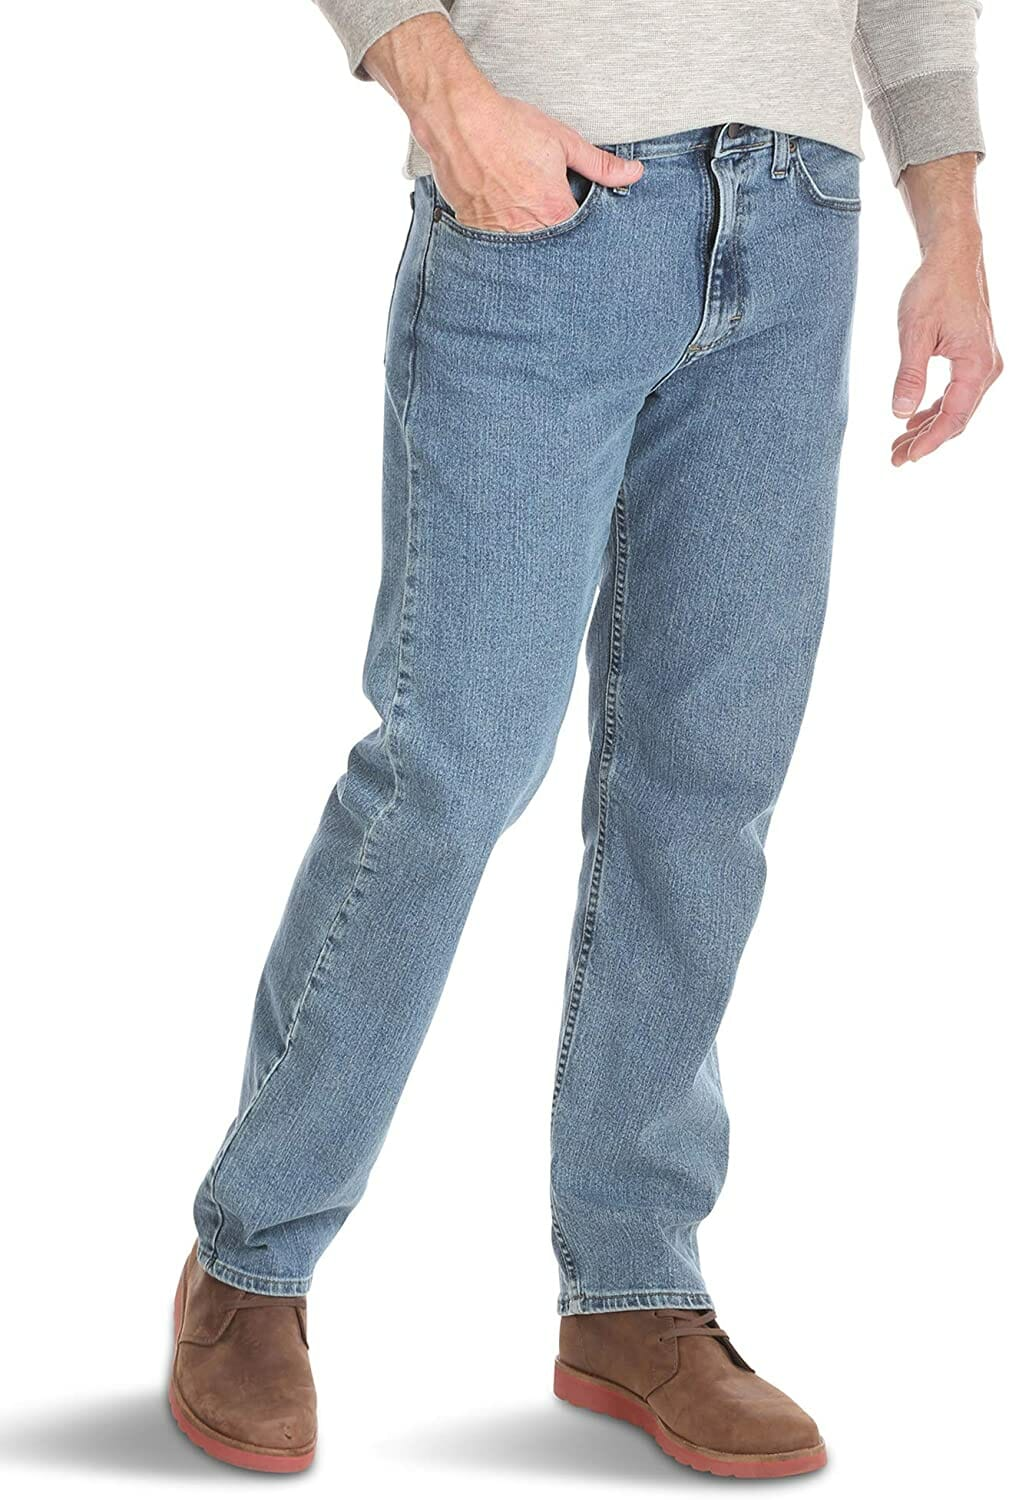 Wrangler Relaxed Fit Jean Light Stonewash Hombre